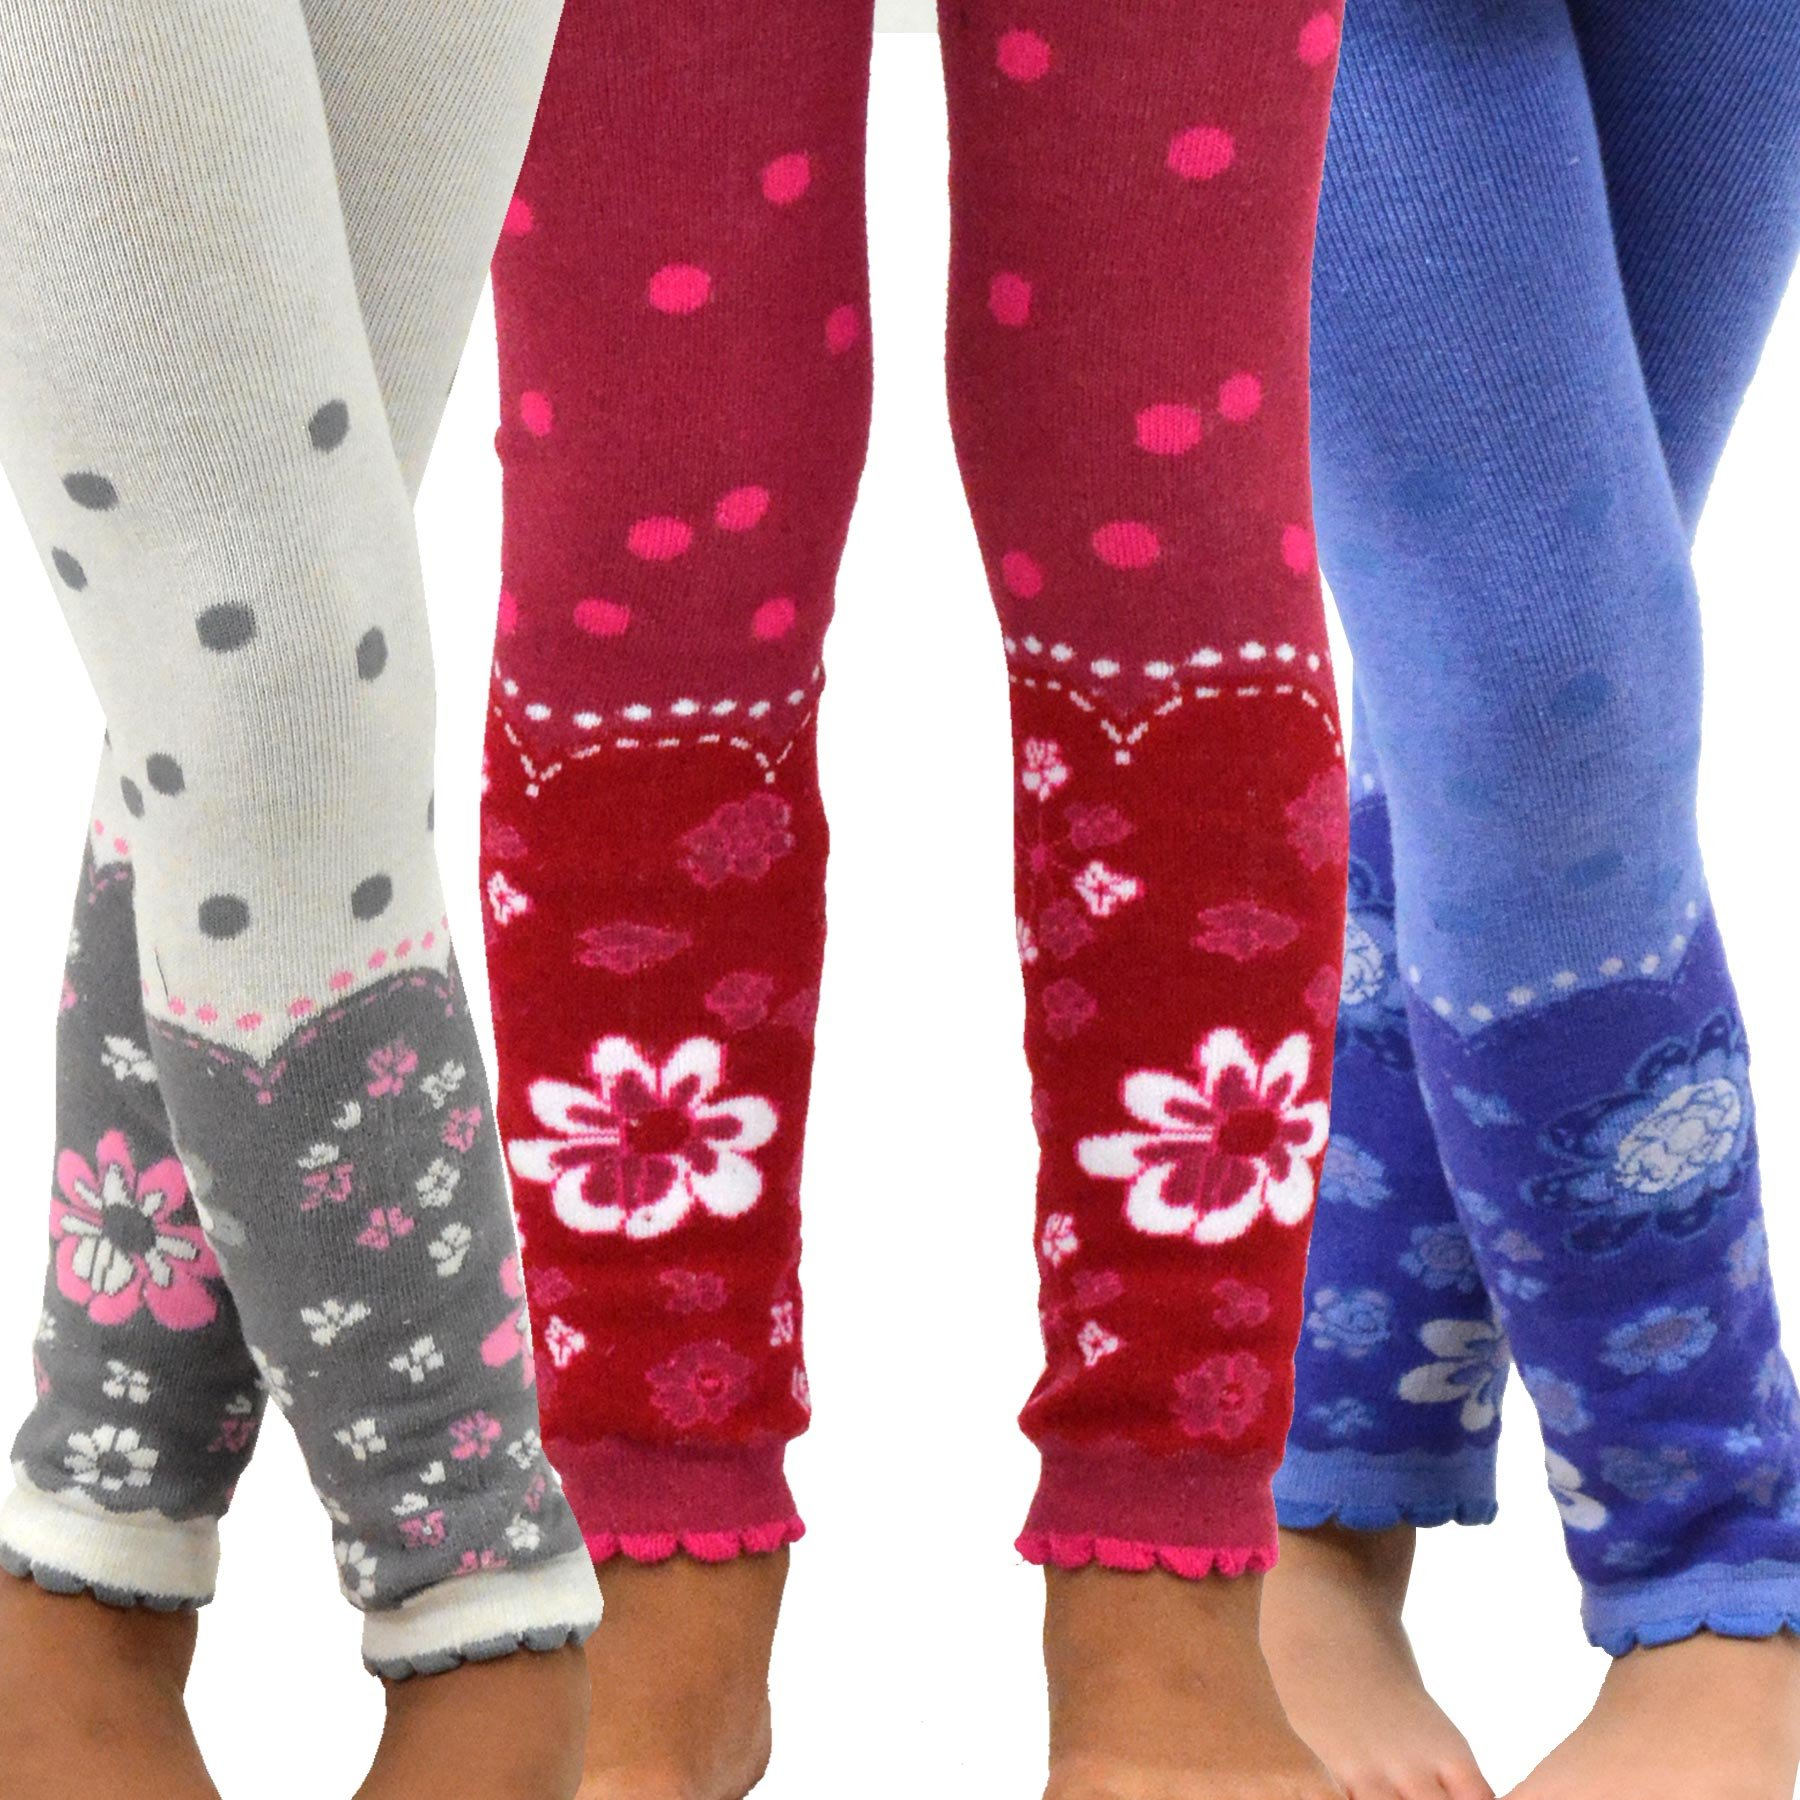 1b7ea6d961c Get Quotations · TeeHee (Naartjie) Kids Girls Fashion Cotton Leggings (Footless  Tights) 3 Pair Pack